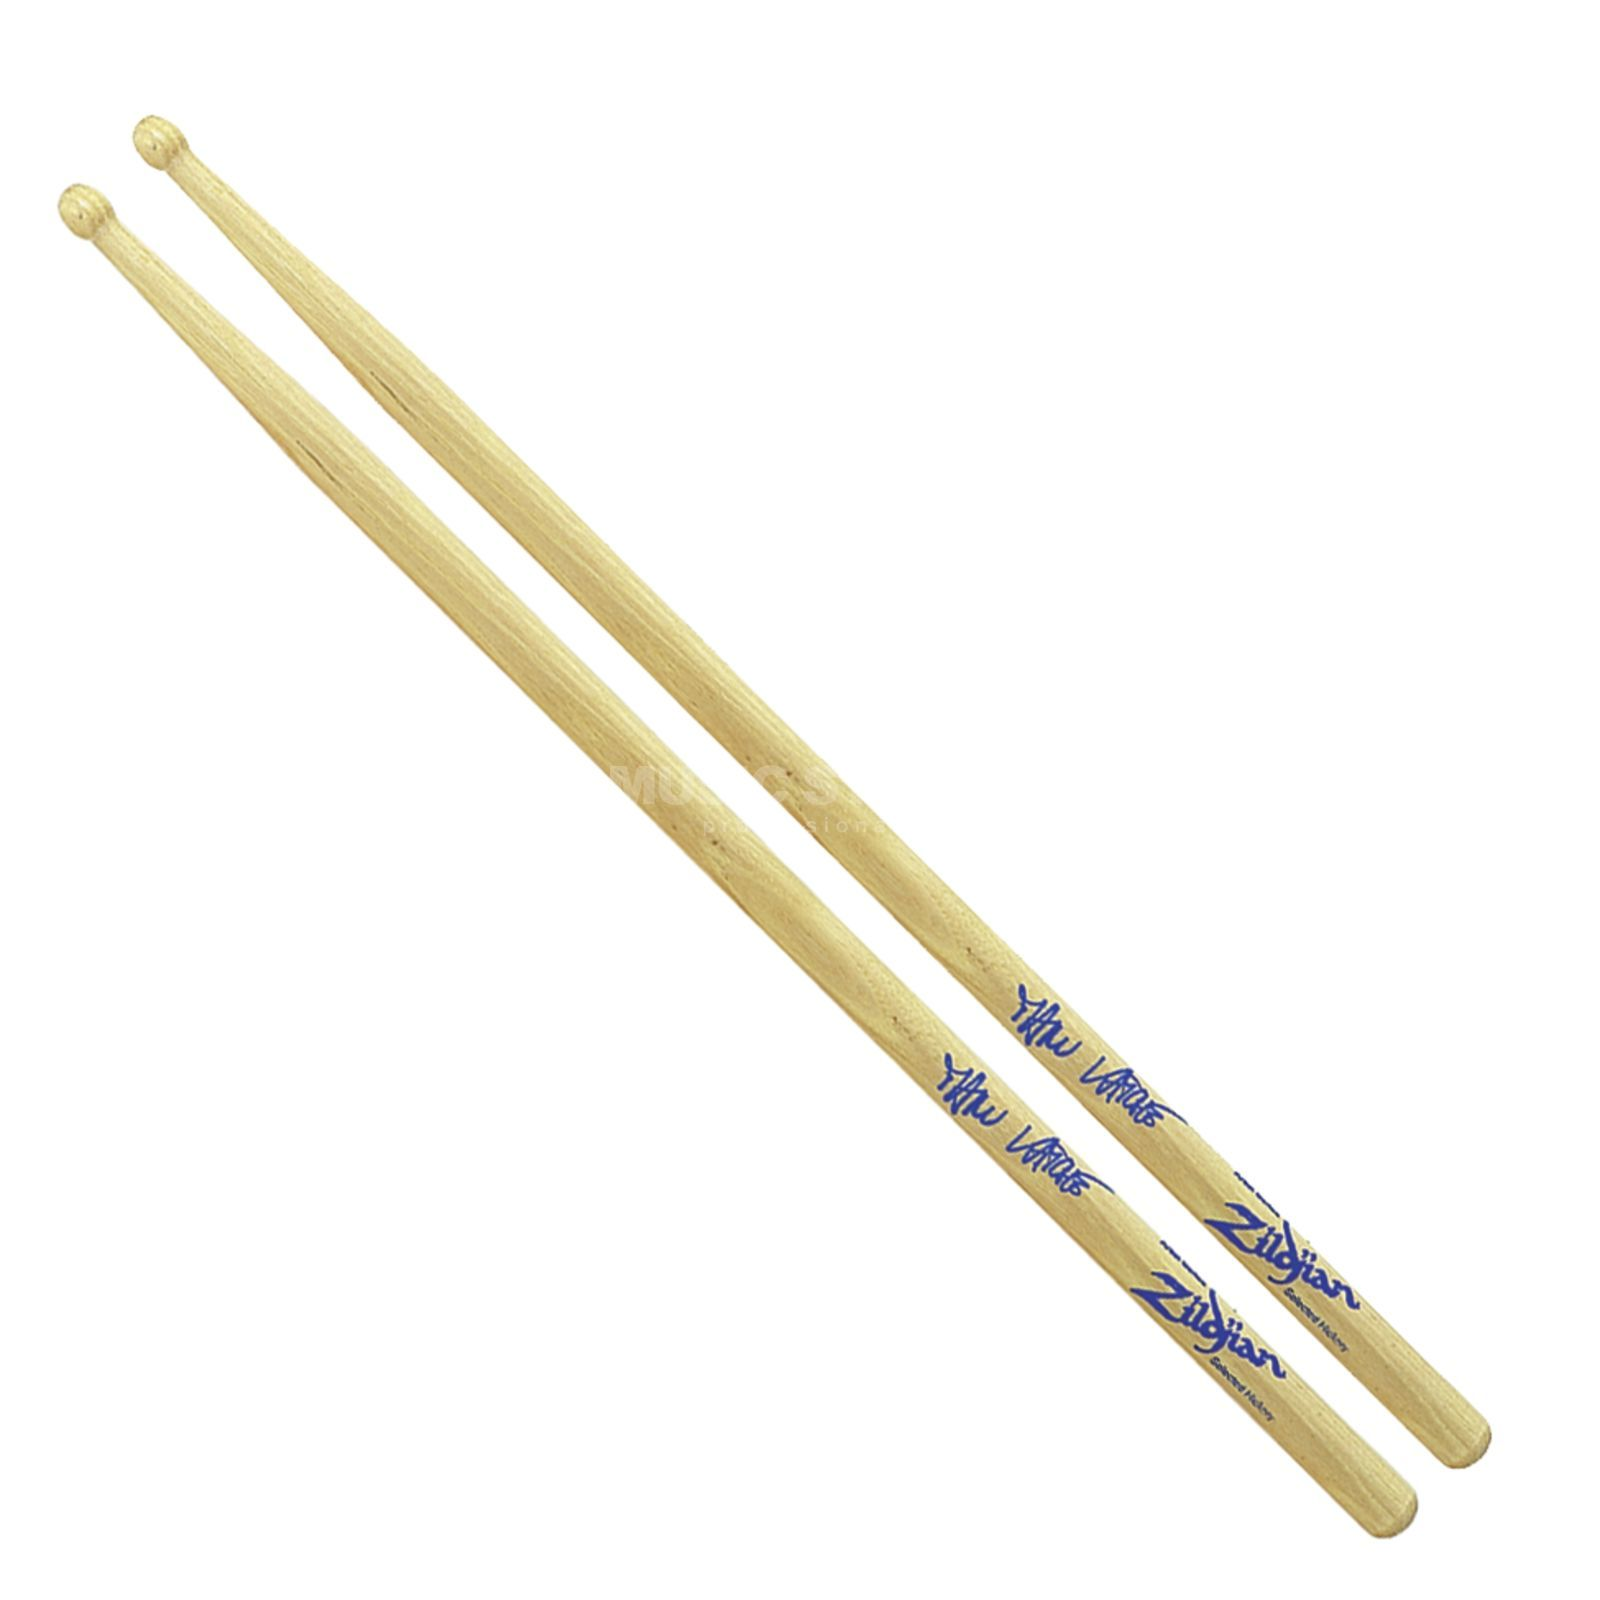 Zildjian Manu Katche Hickory Sticks Natural Finish, Wood Tip Product Image